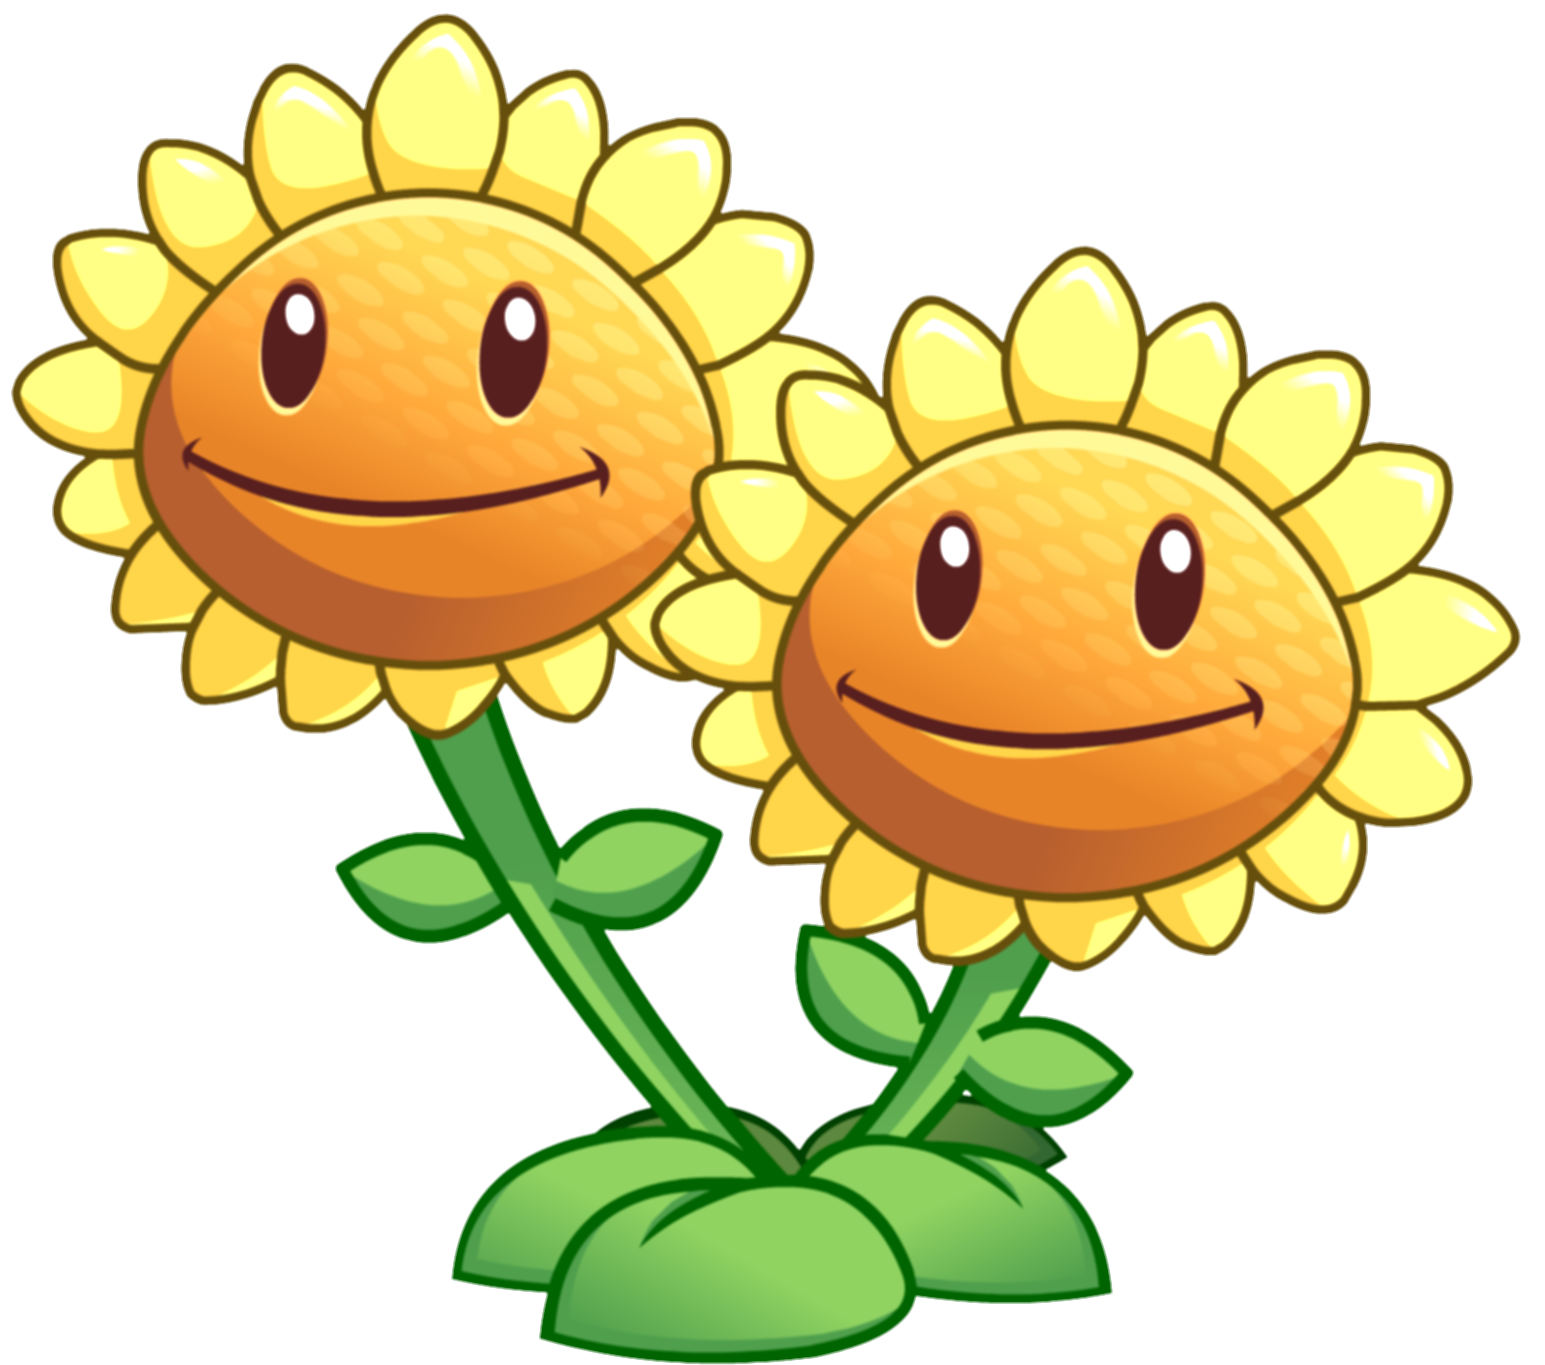 plants vs zombies characters png